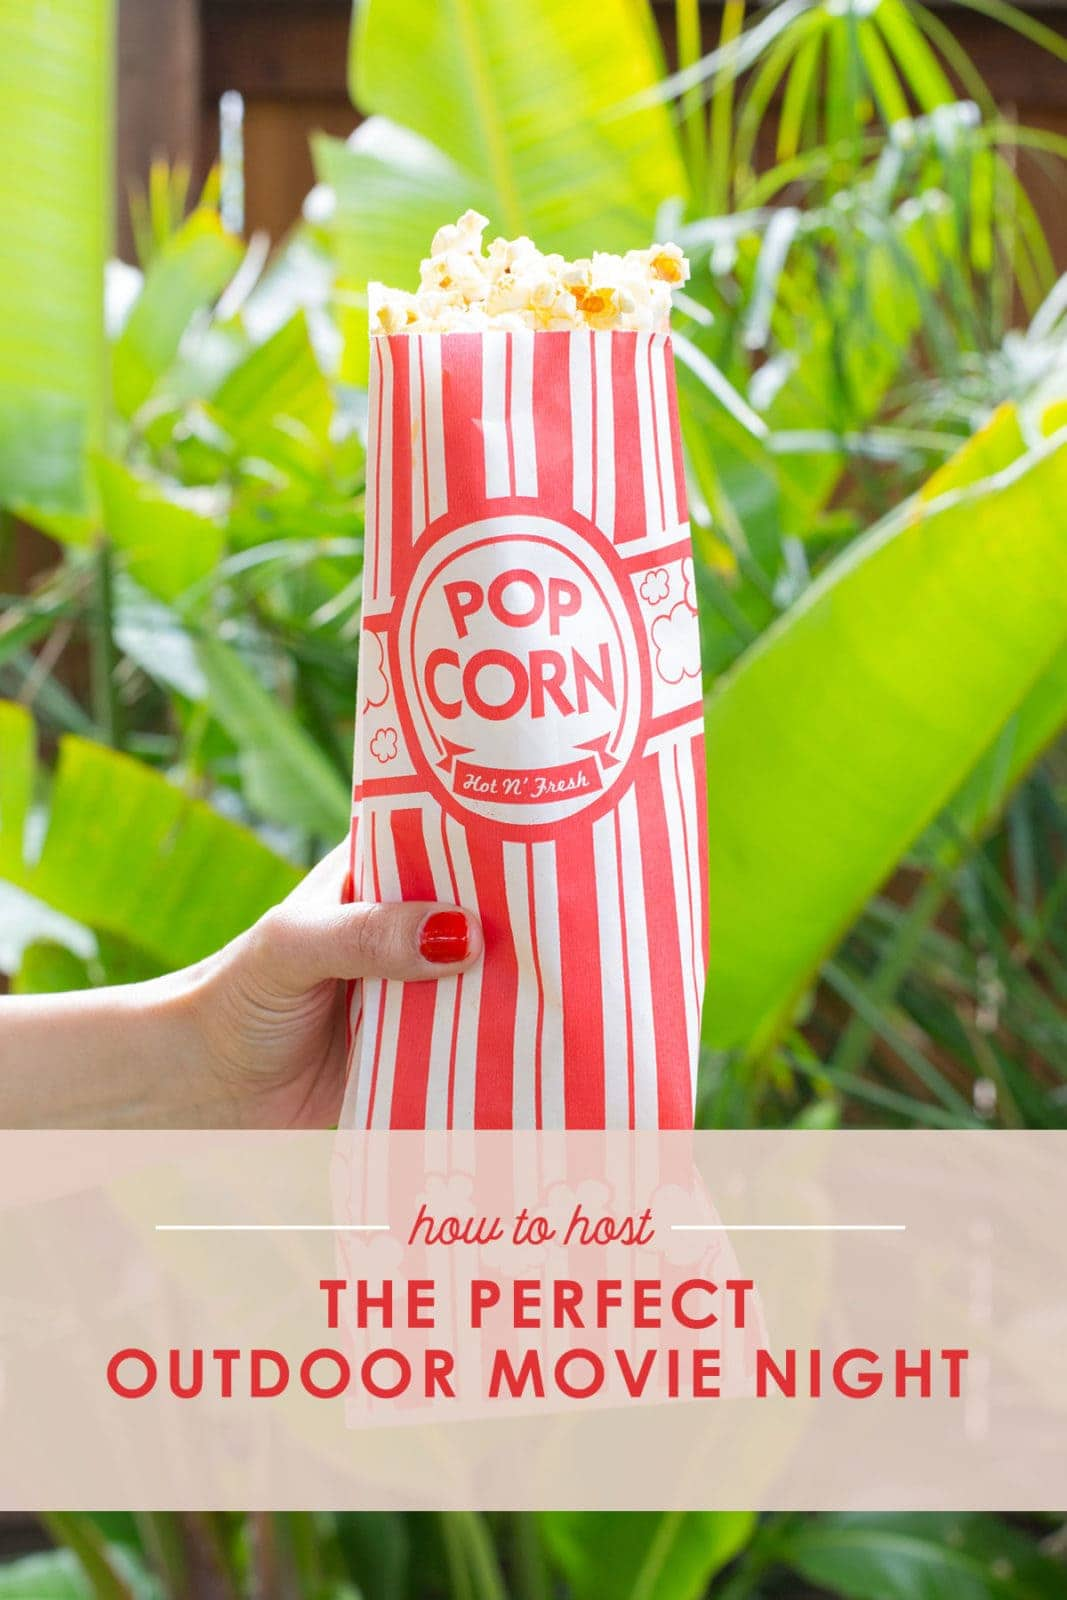 How to host the perfect outdoor movie night, hand holding popcorn bag